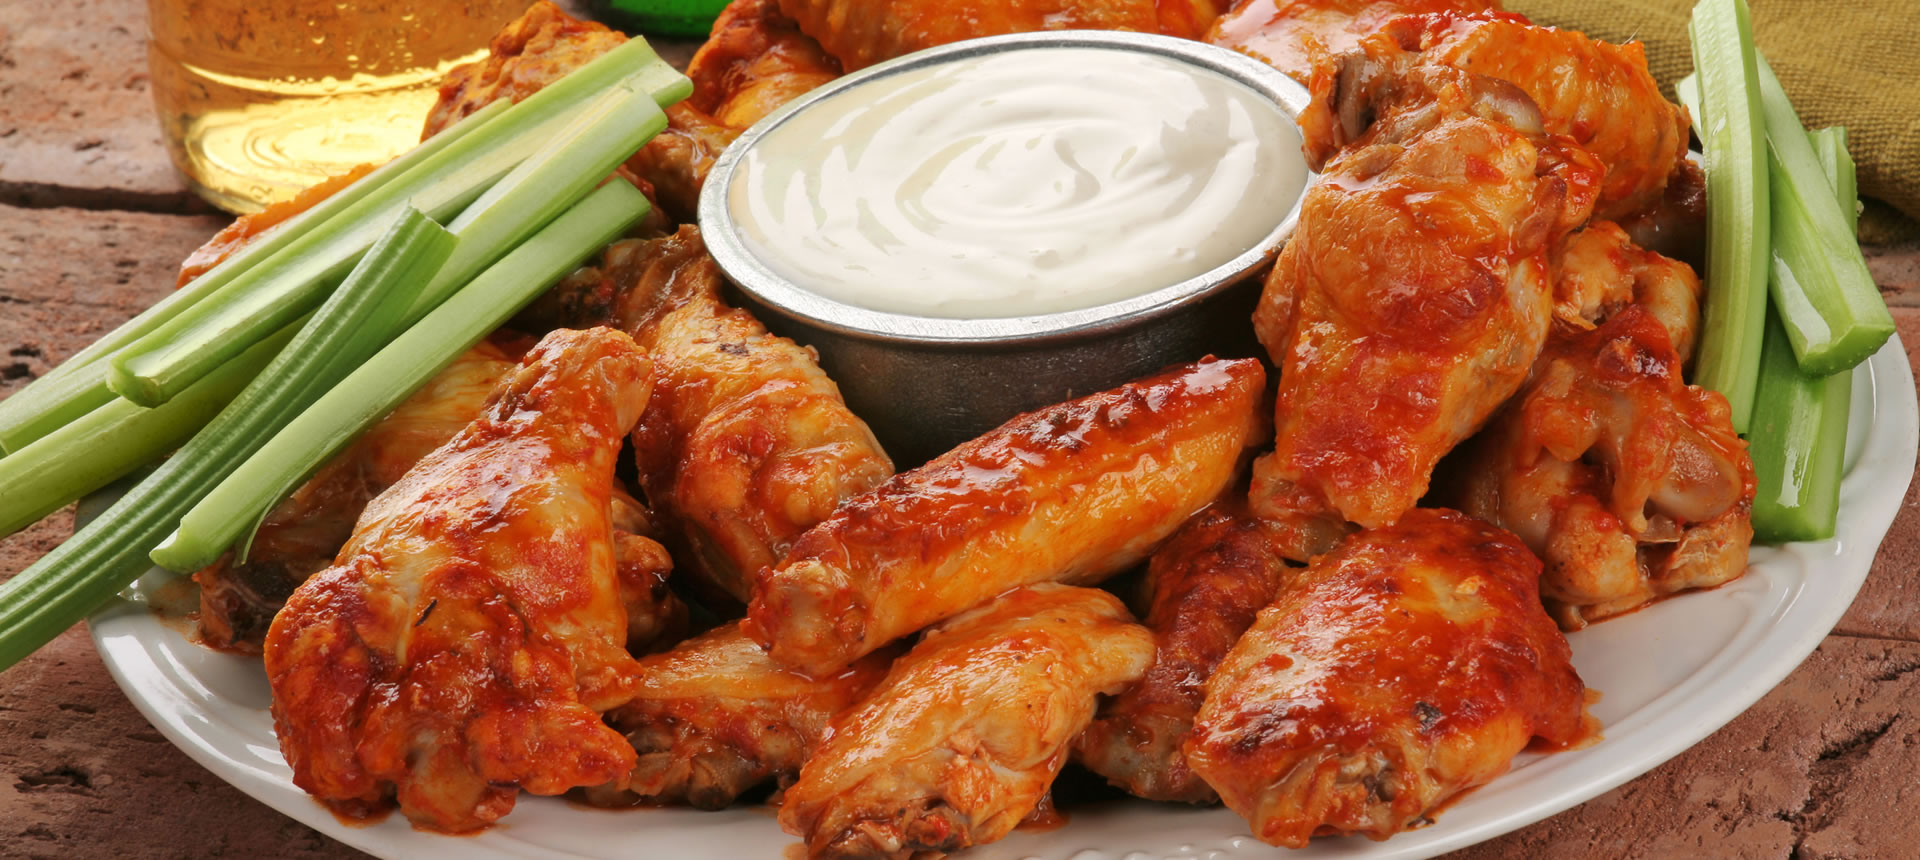 Buffalo Chicken Wings from Wing King Las Vegas Nevada